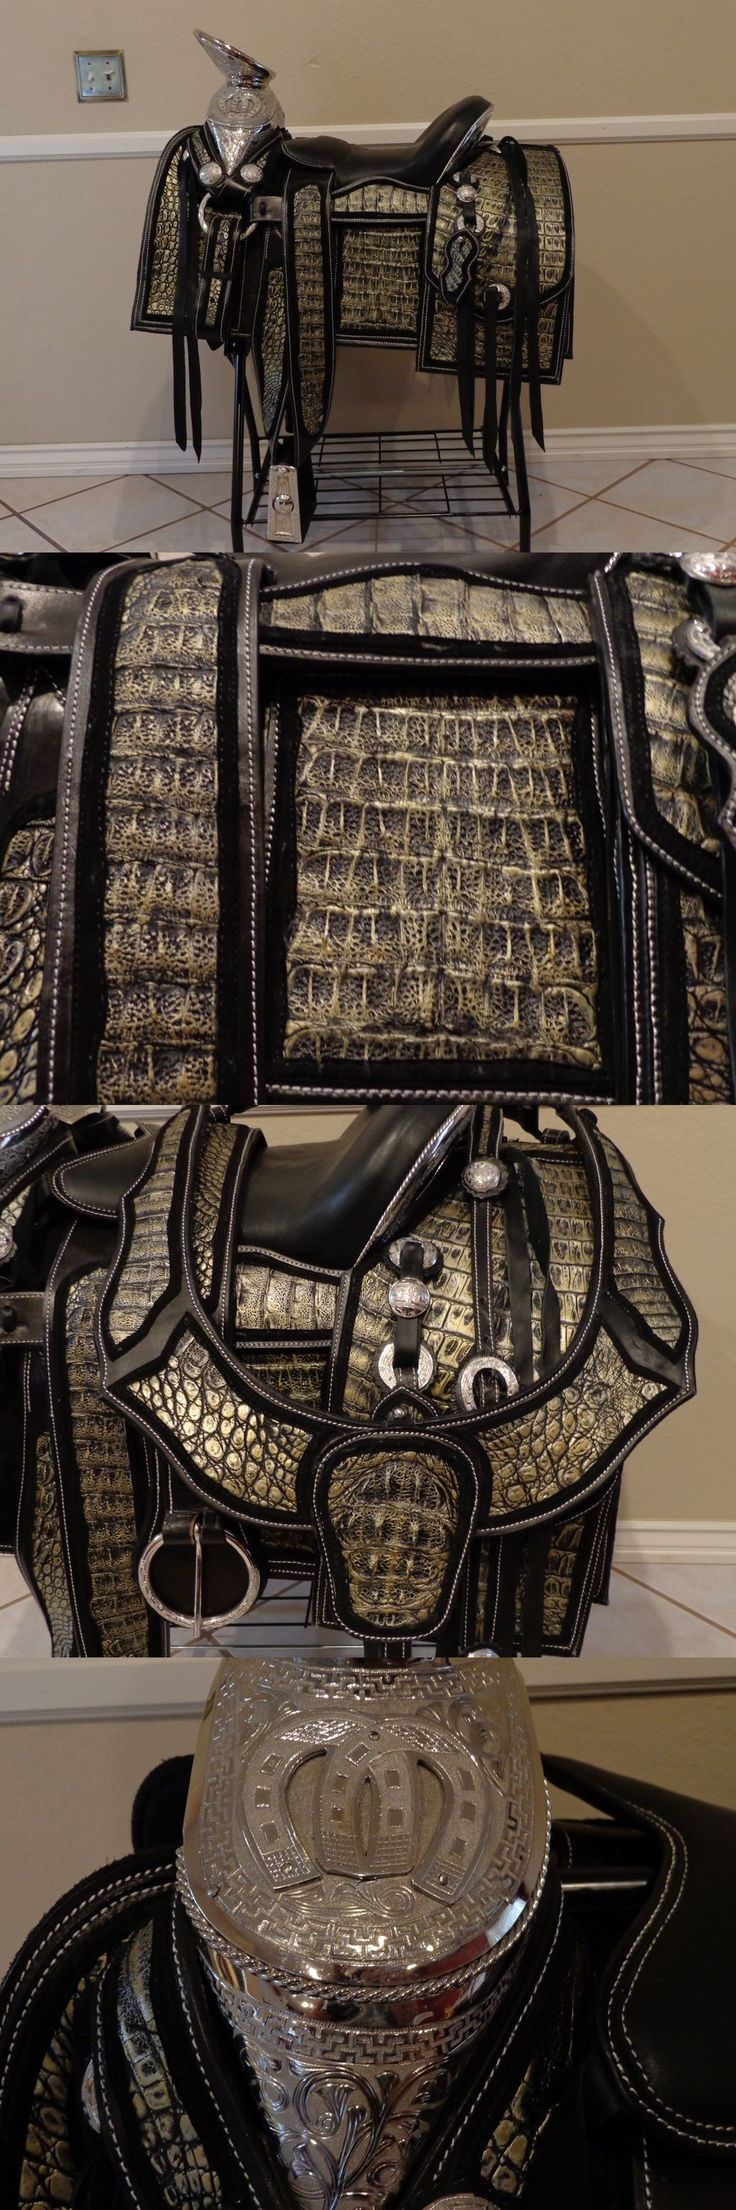 Western Show Accessories 160042: 15-1 2 Mexican Saddle Monturas Charras Exotica. Genuing Caiman Leather -> BUY IT NOW ONLY: $3155 on eBay!